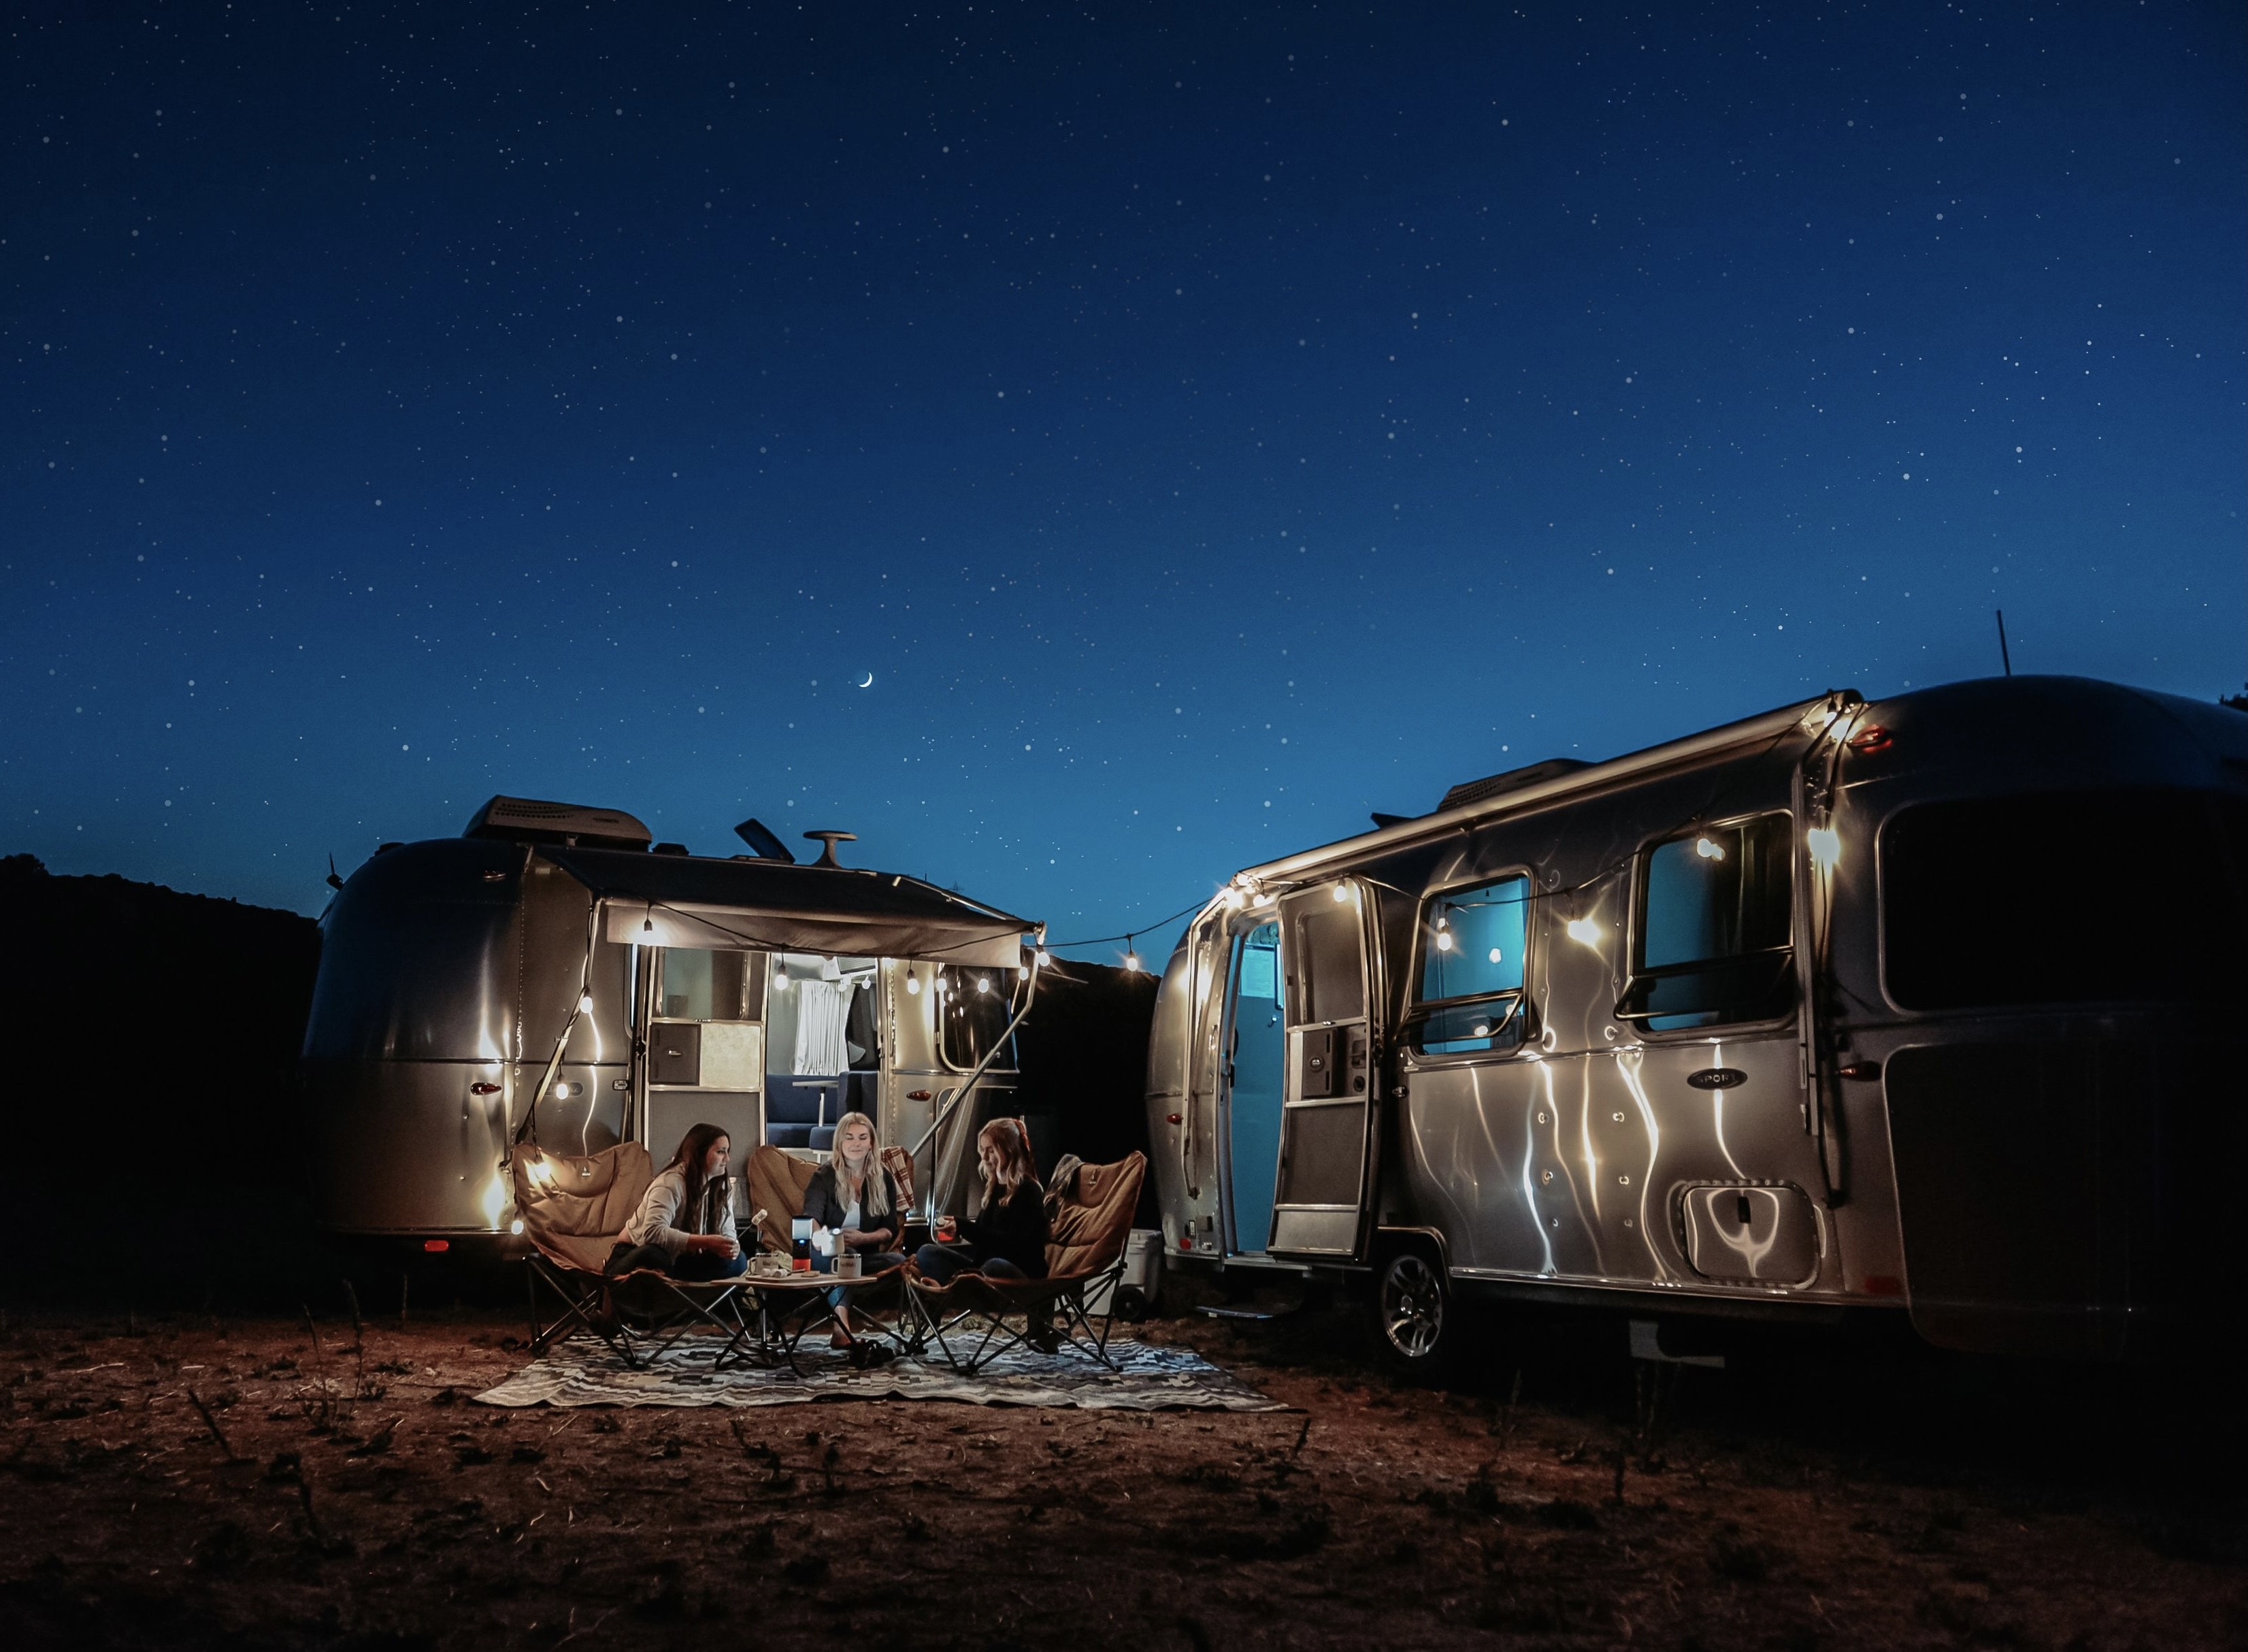 Sleep under the stars in luxury and comfort. Airstream Bambi 2020